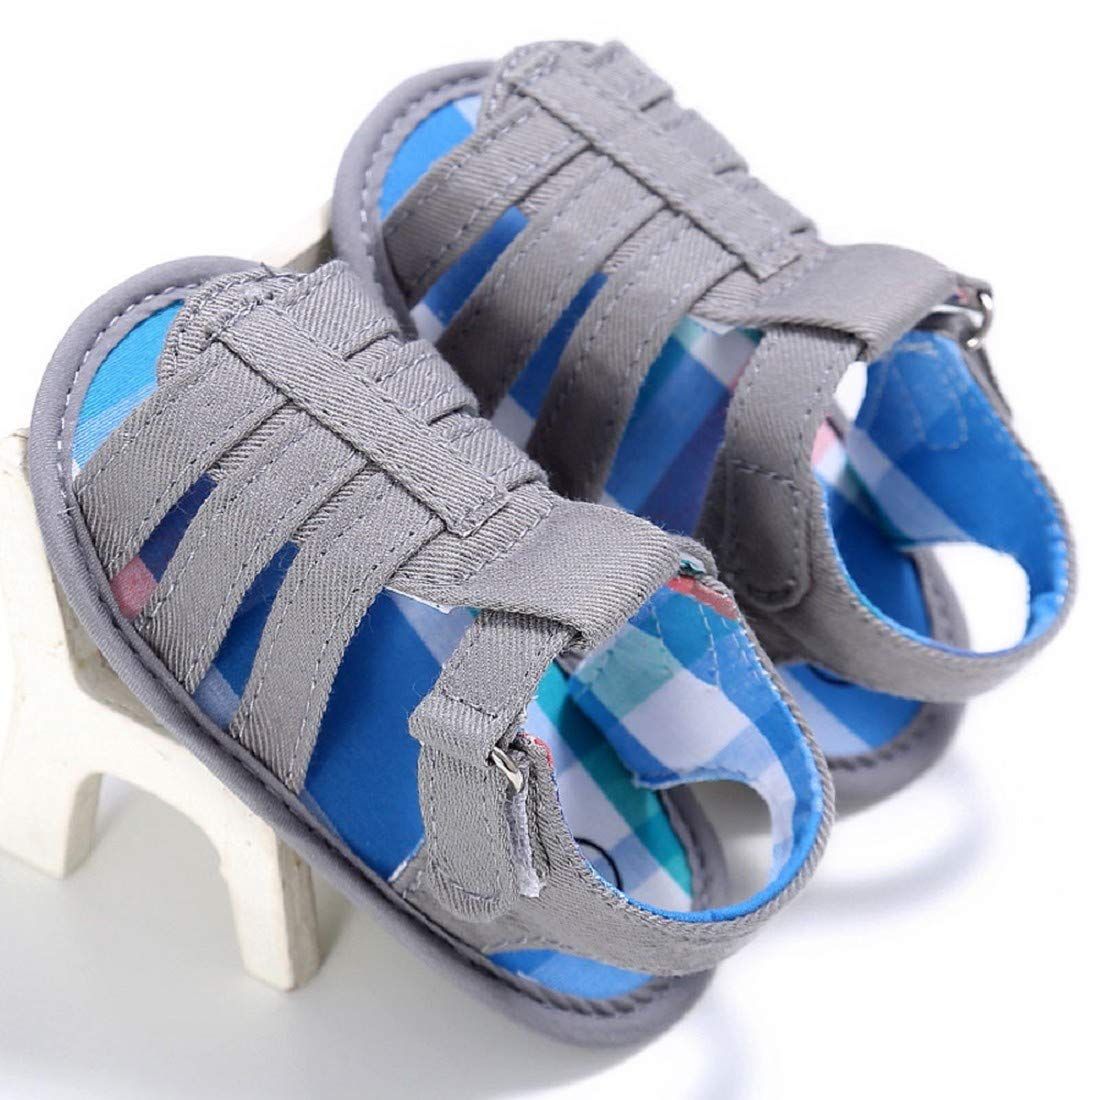 FAPIZI Baby Shoes Infant Sandals Toddler Soft Sole Crib First Walkers Girls Kid Flats